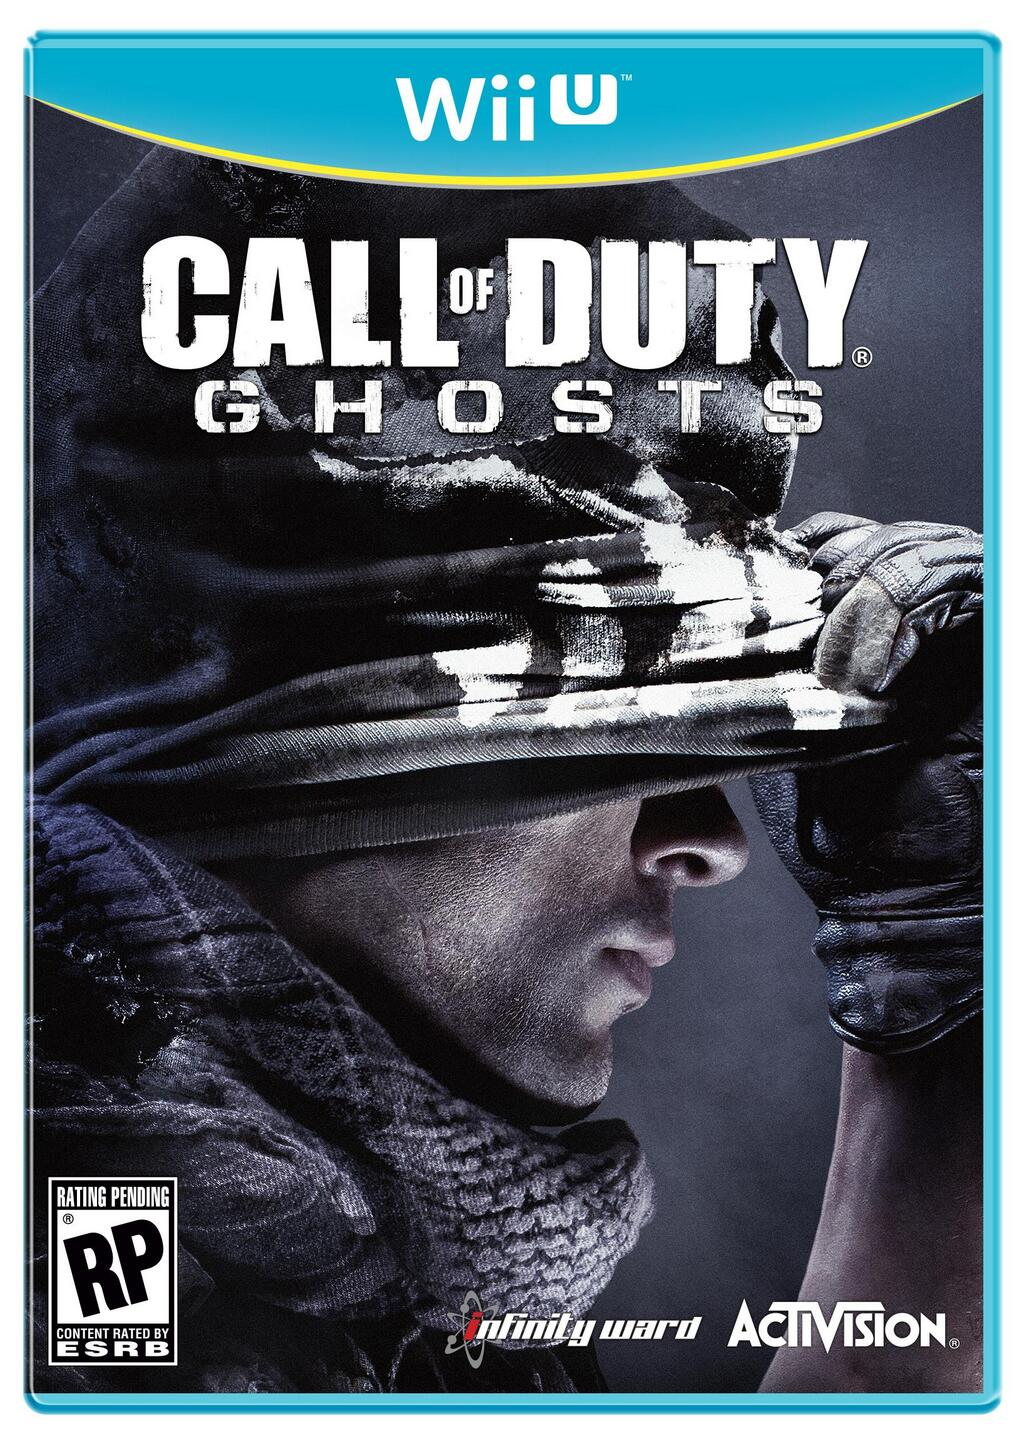 call of duty ghots wii u packshot